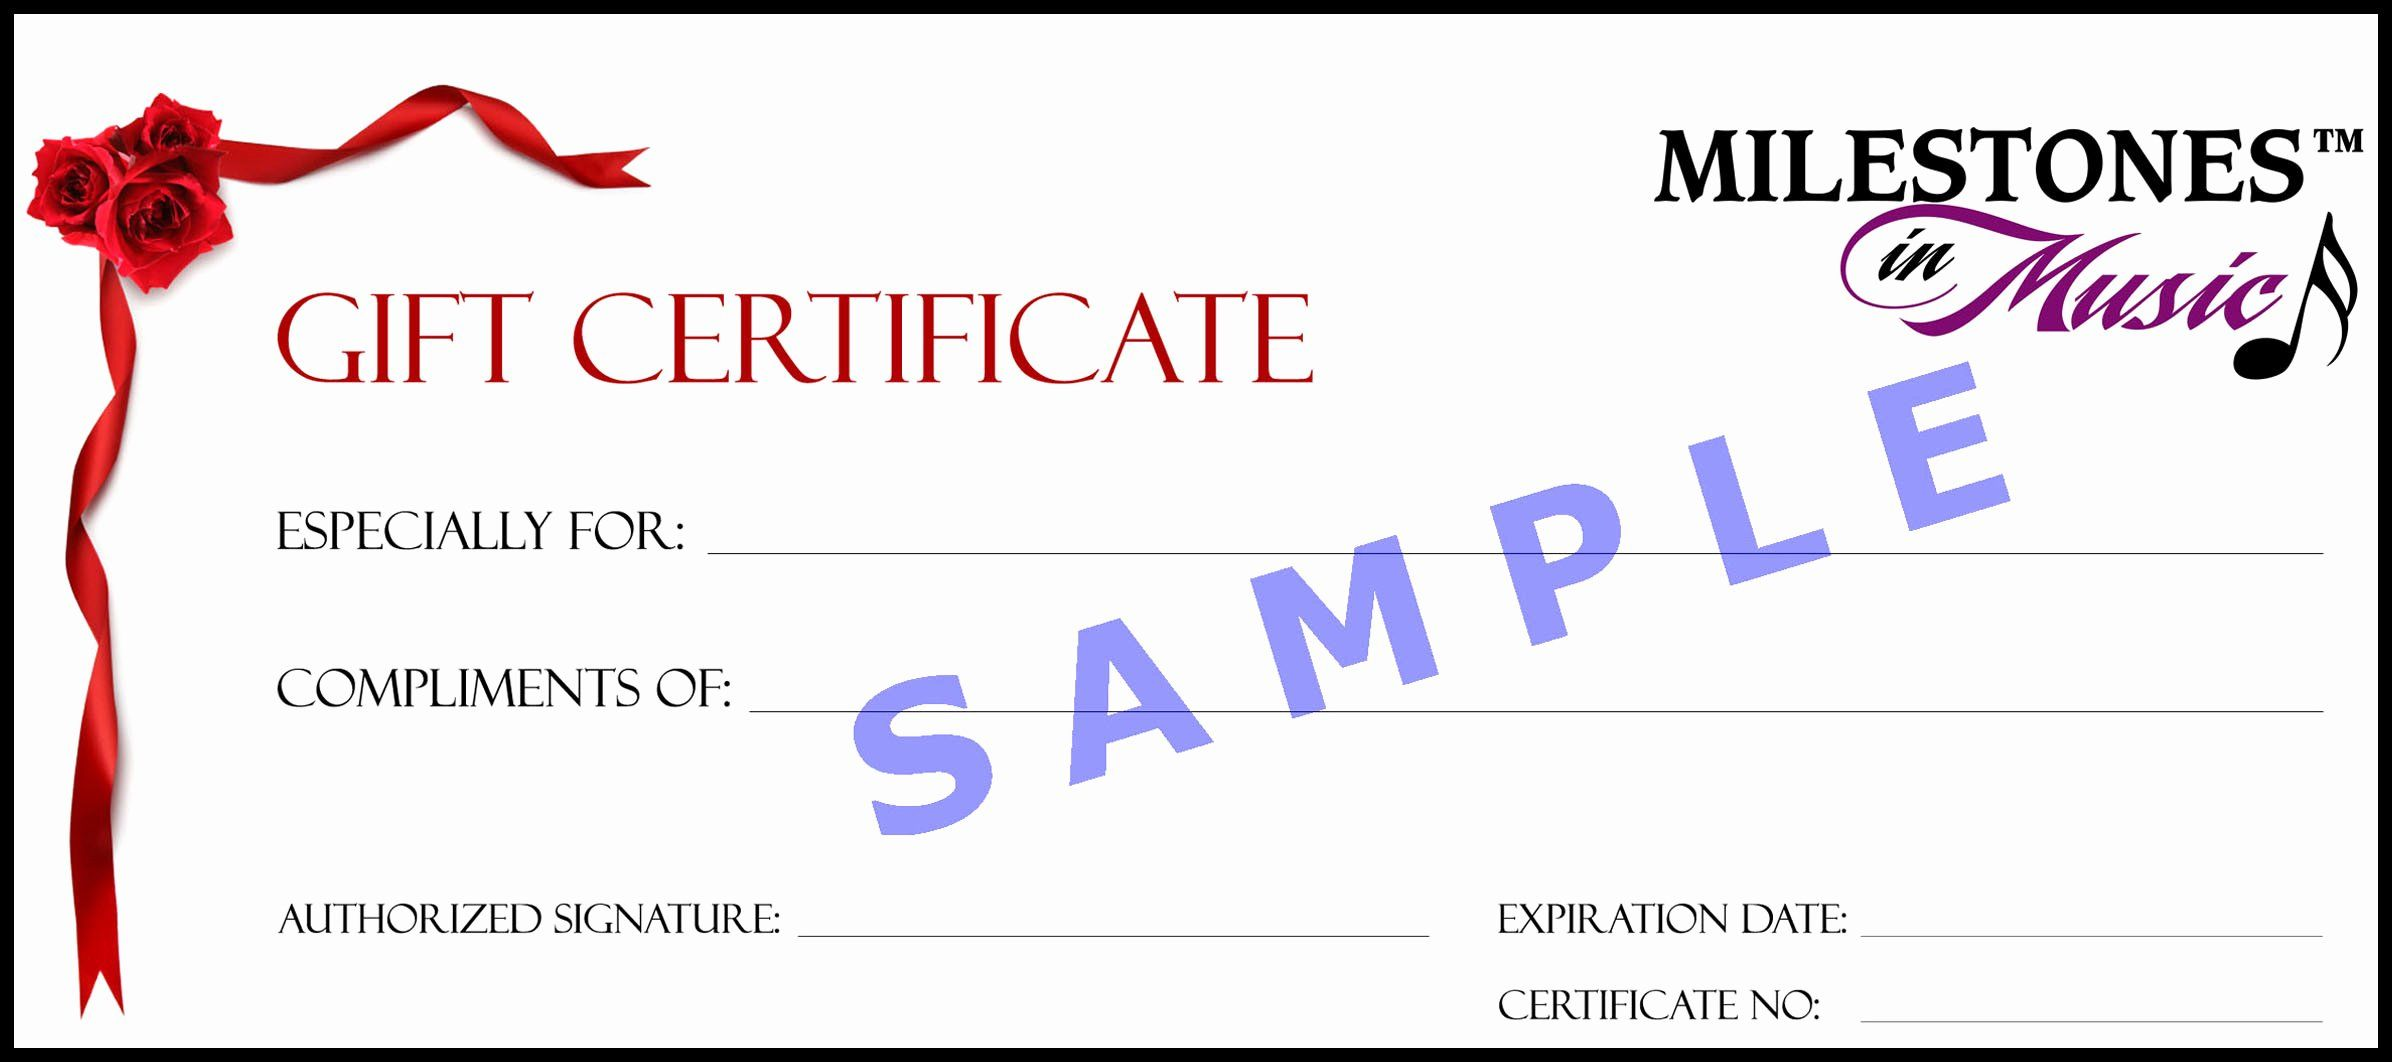 007 Gift Certificate Templates Free Template Ideas With Regard To Pla Gift Certificate Template Free Printable Gift Certificates Free Gift Certificate Template